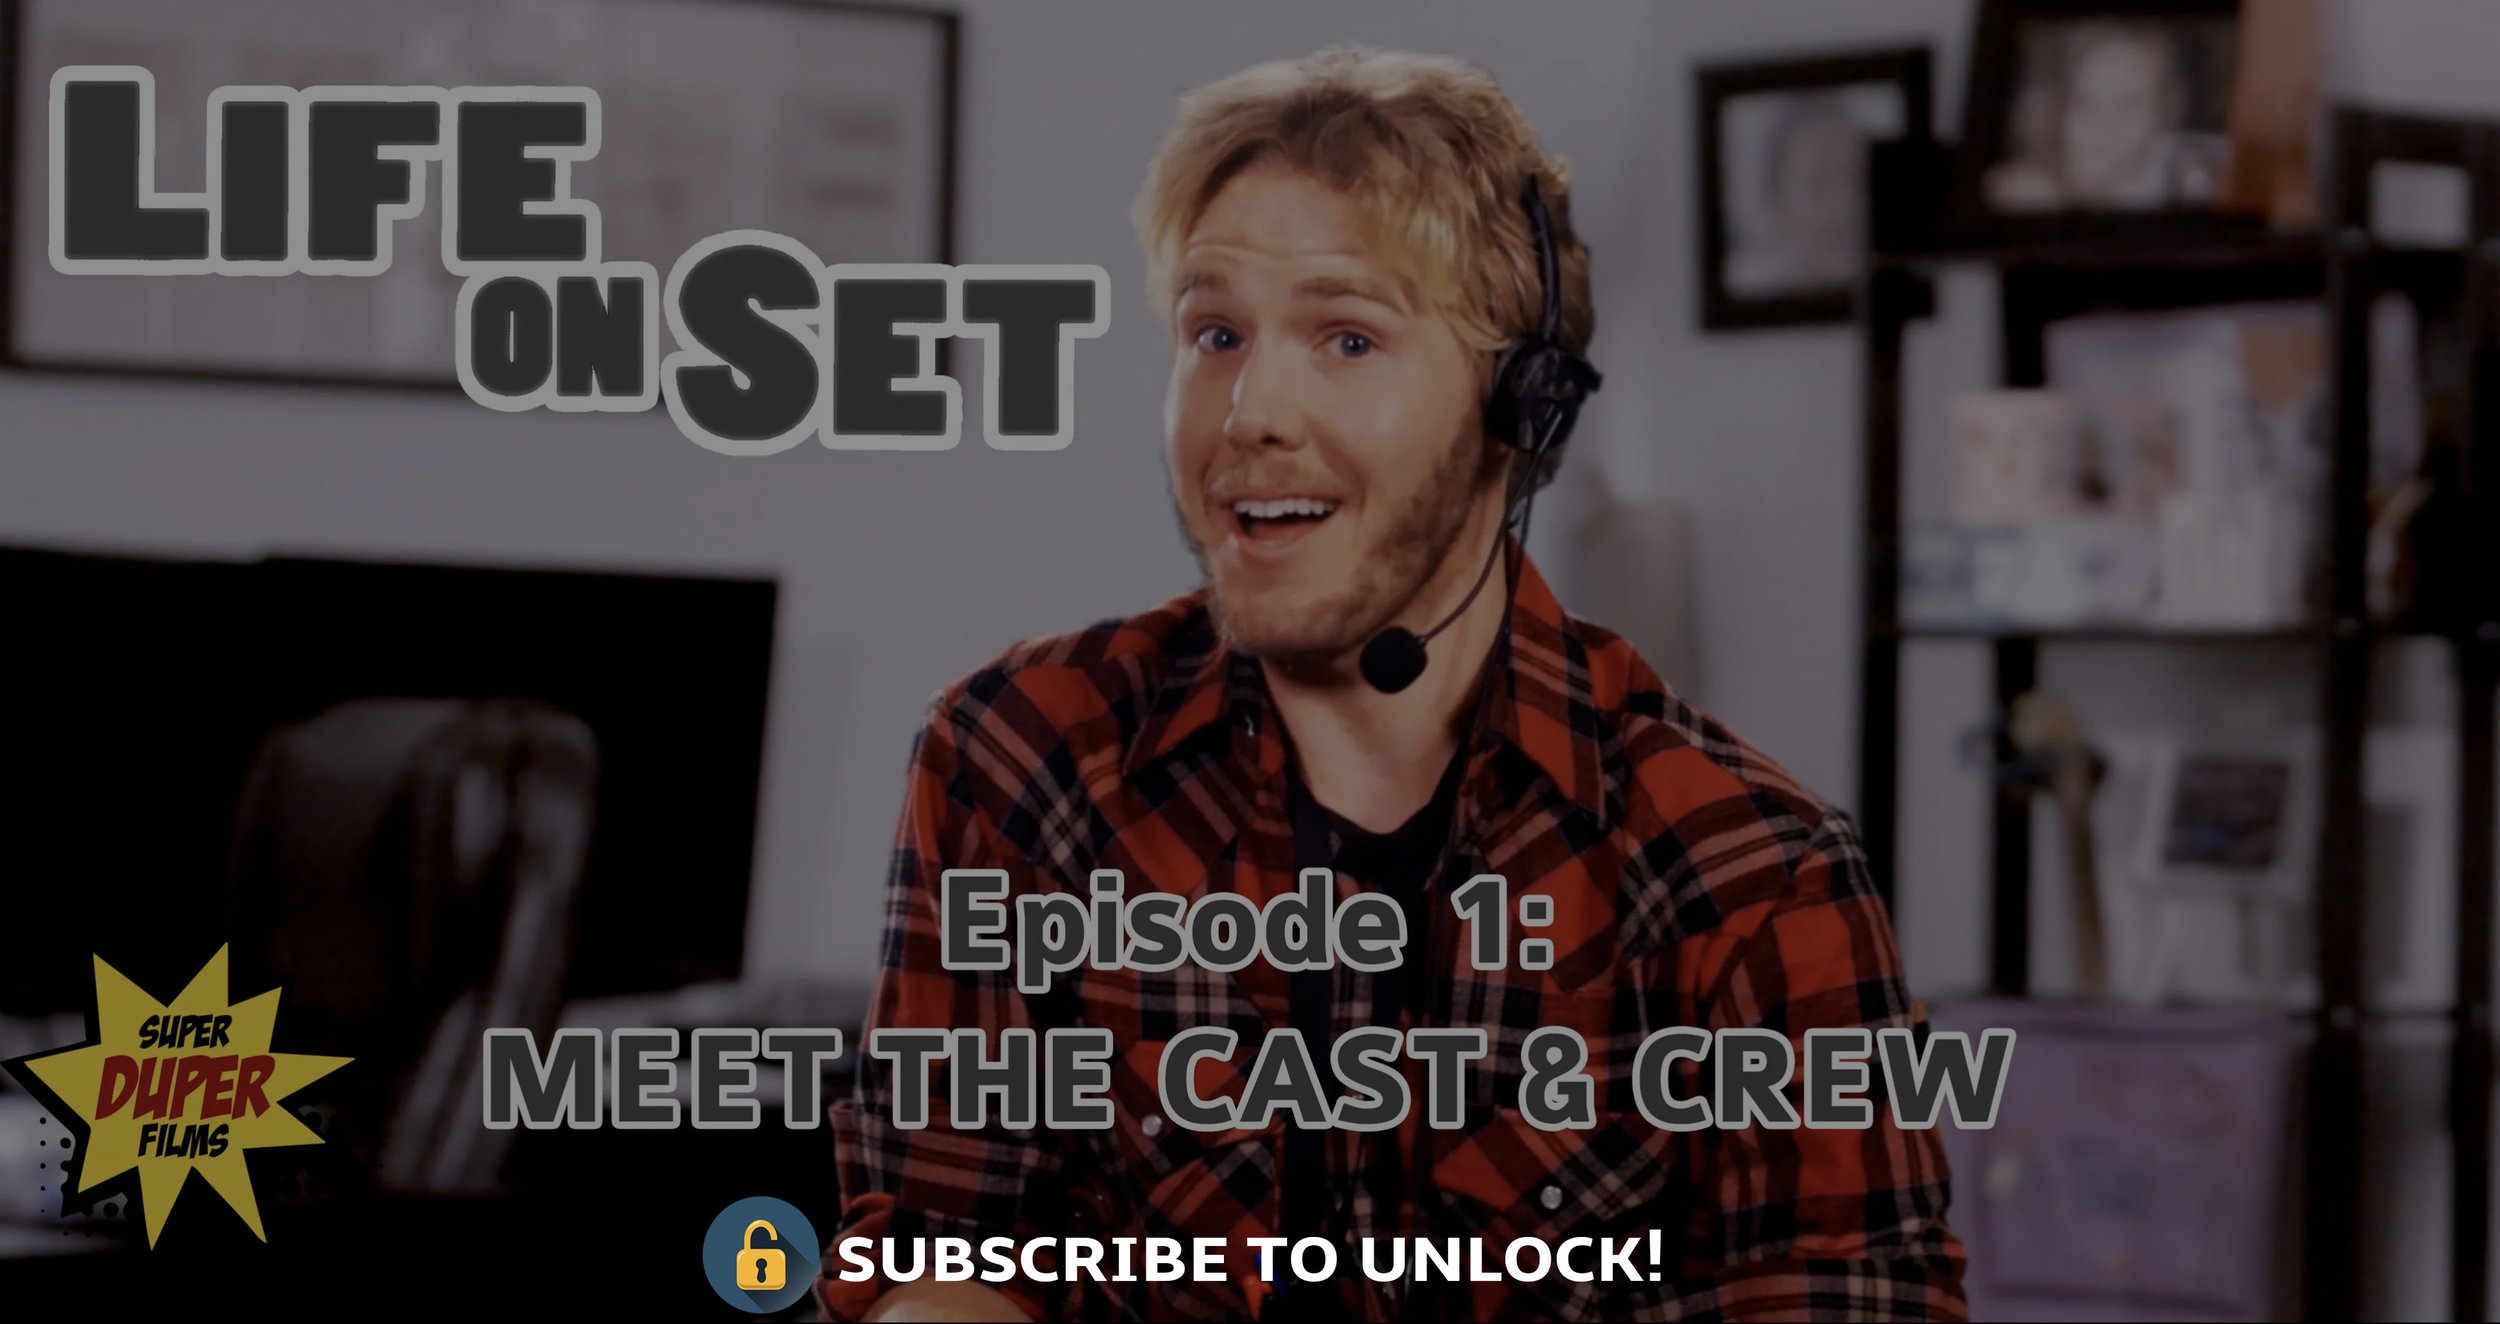 Ep. 1 - We meet the cast and crew and find out their hopes and dreams! (Hint: some may be a little unrealistic)